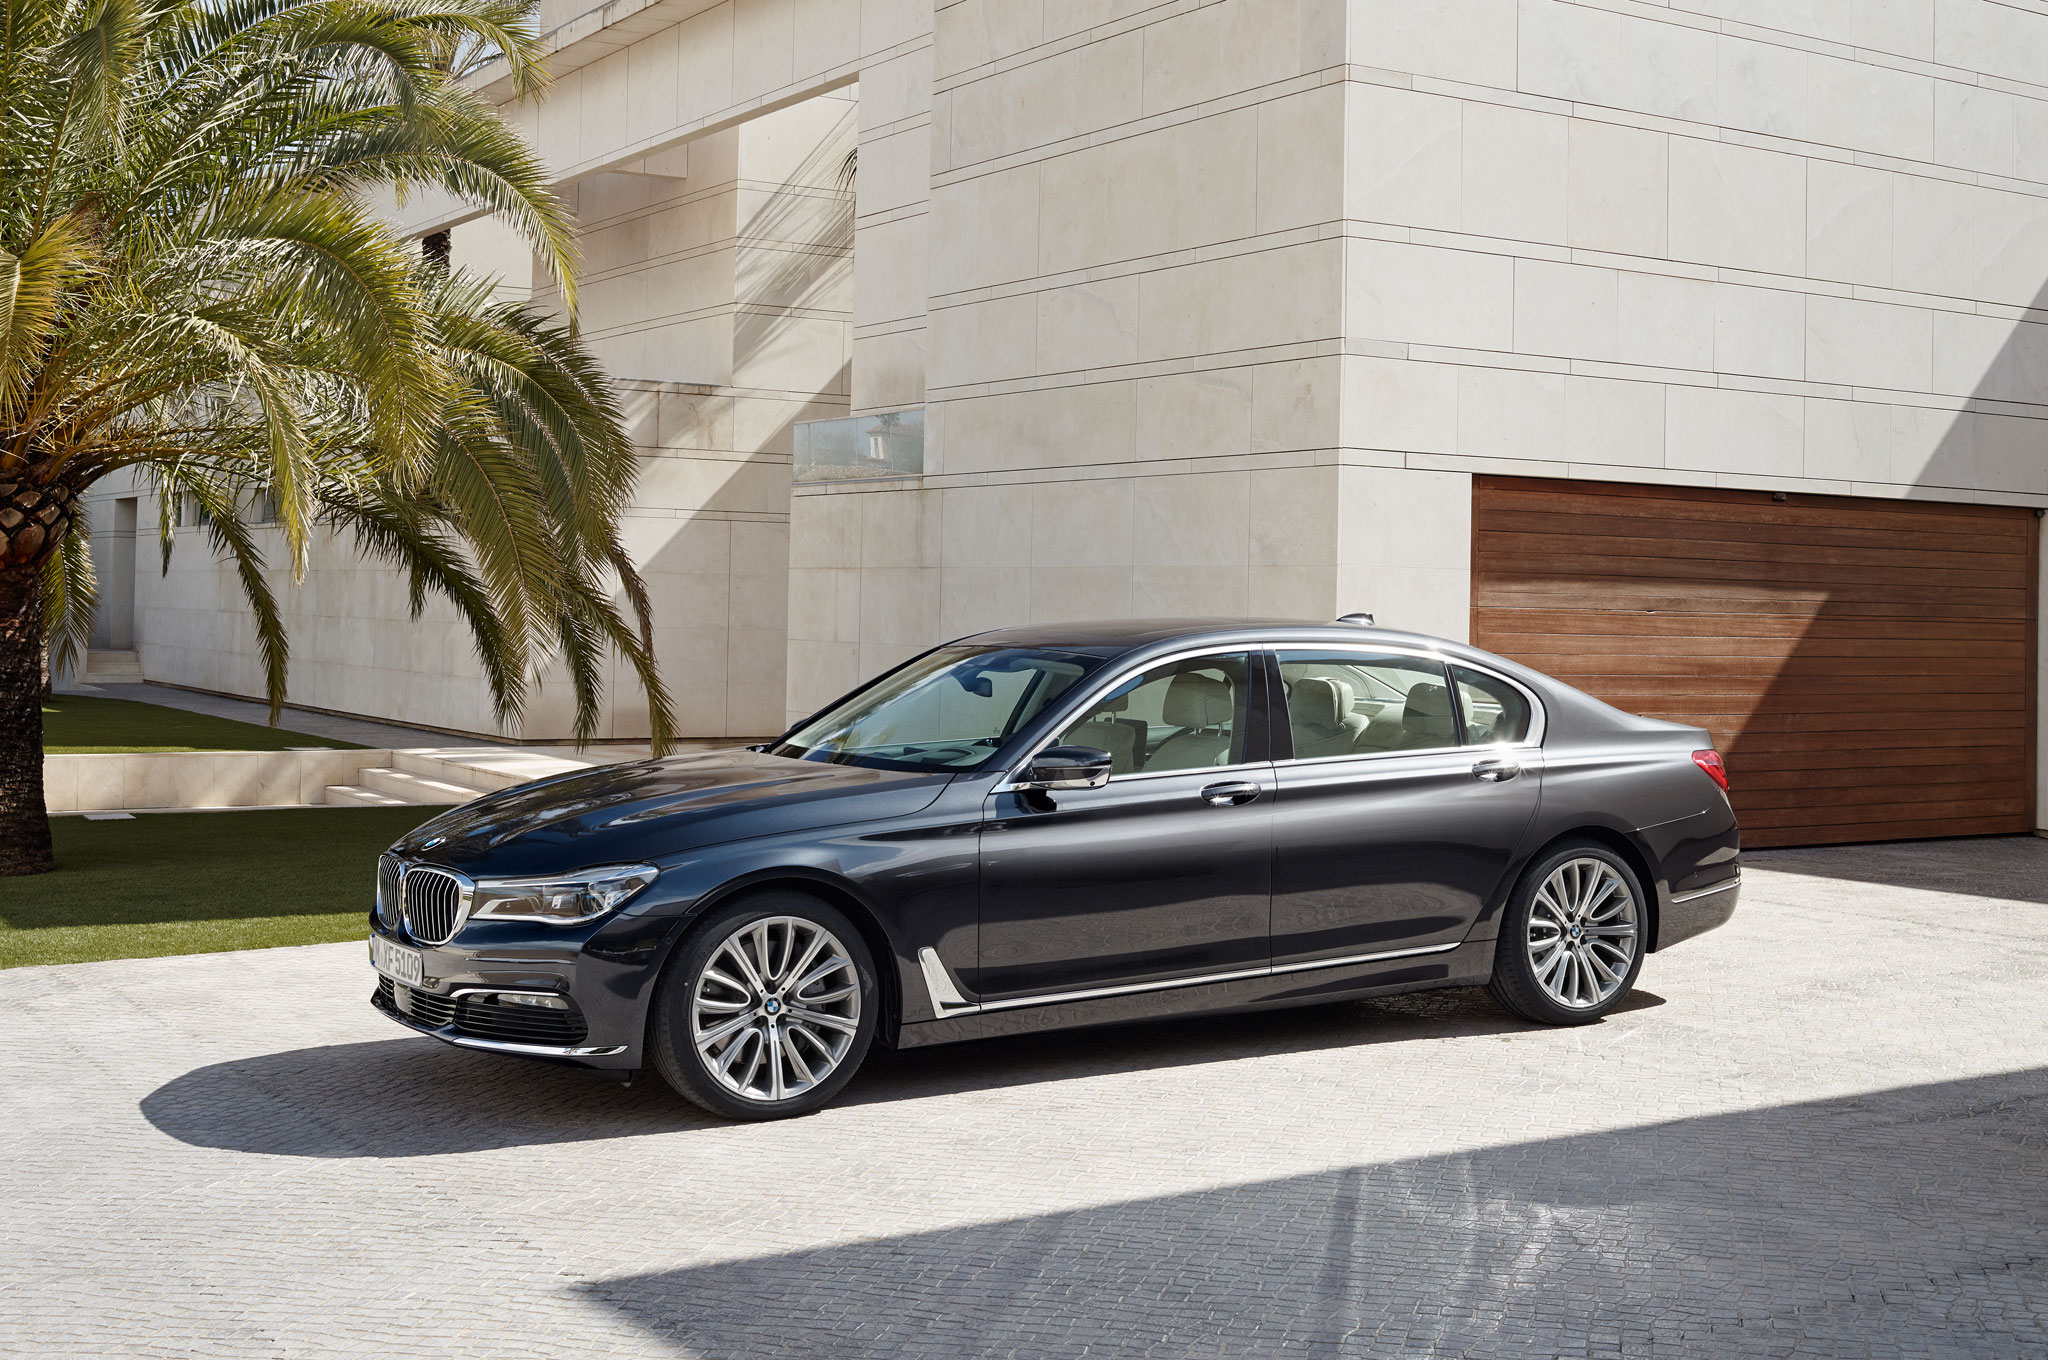 2016 BMW 750Li XDrive Front Three Quarter 02